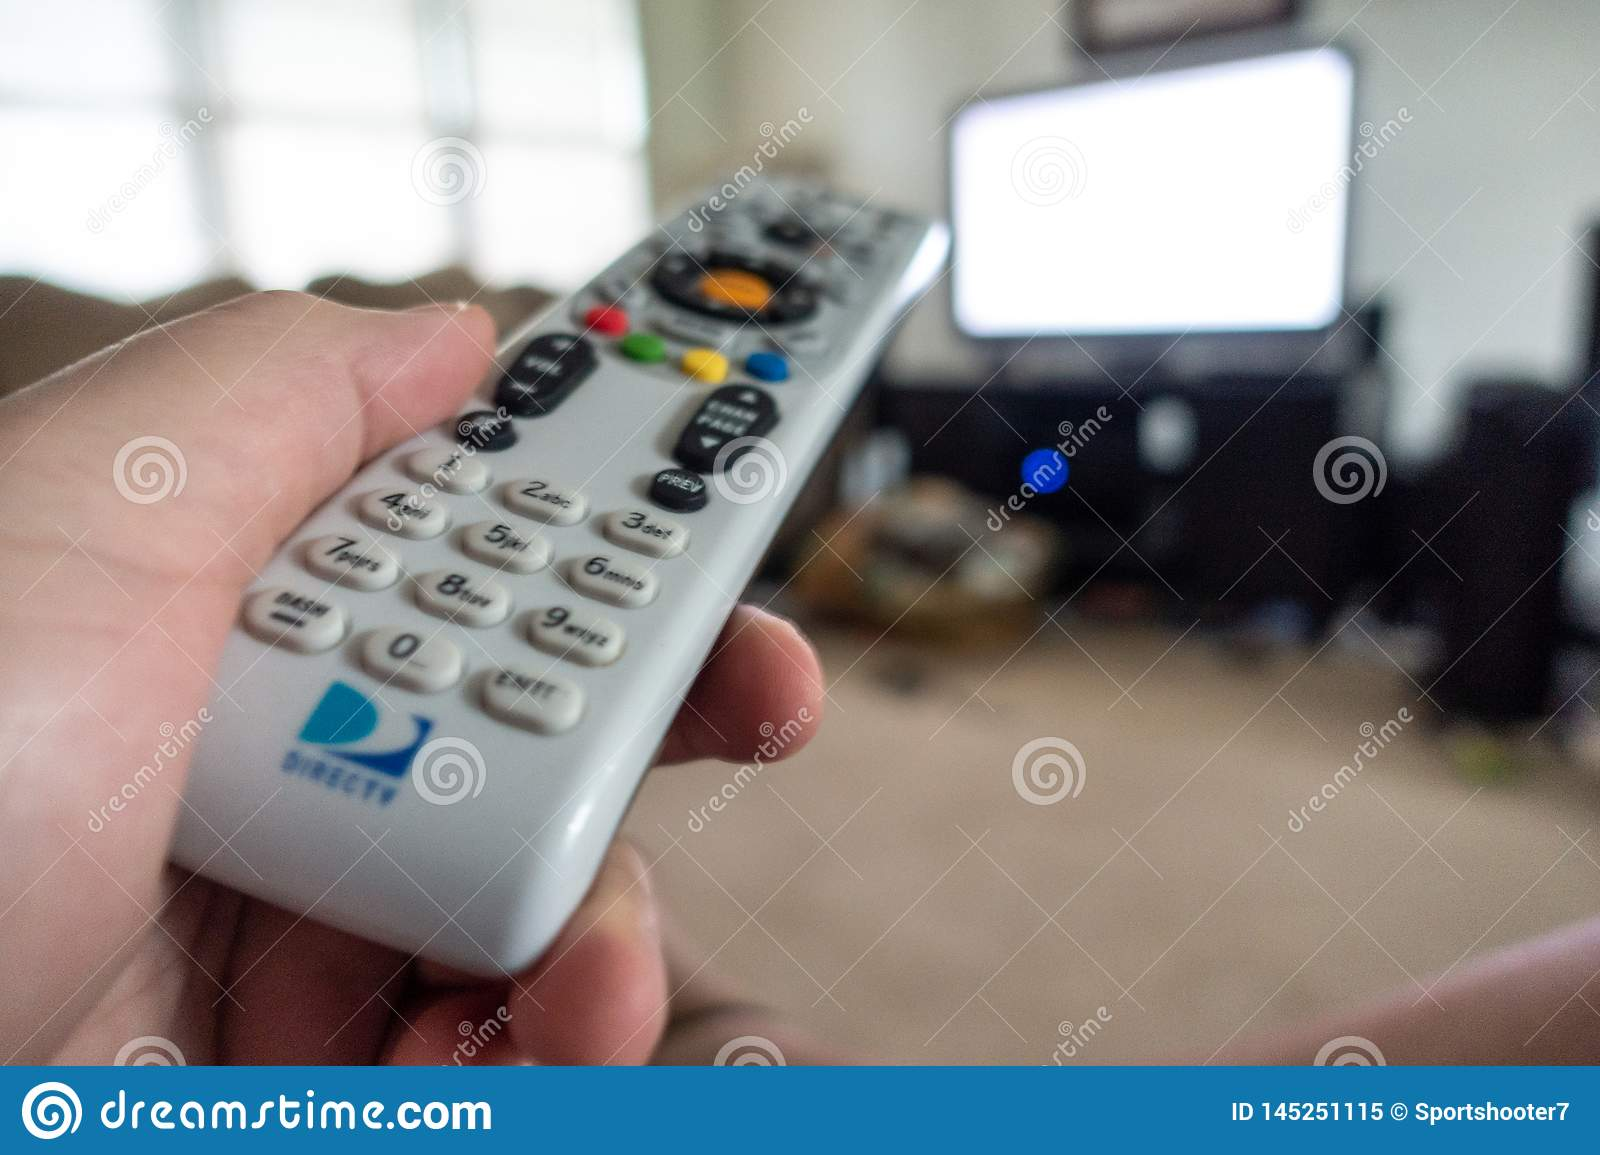 Hand holding DirecTv remote pointing at TV